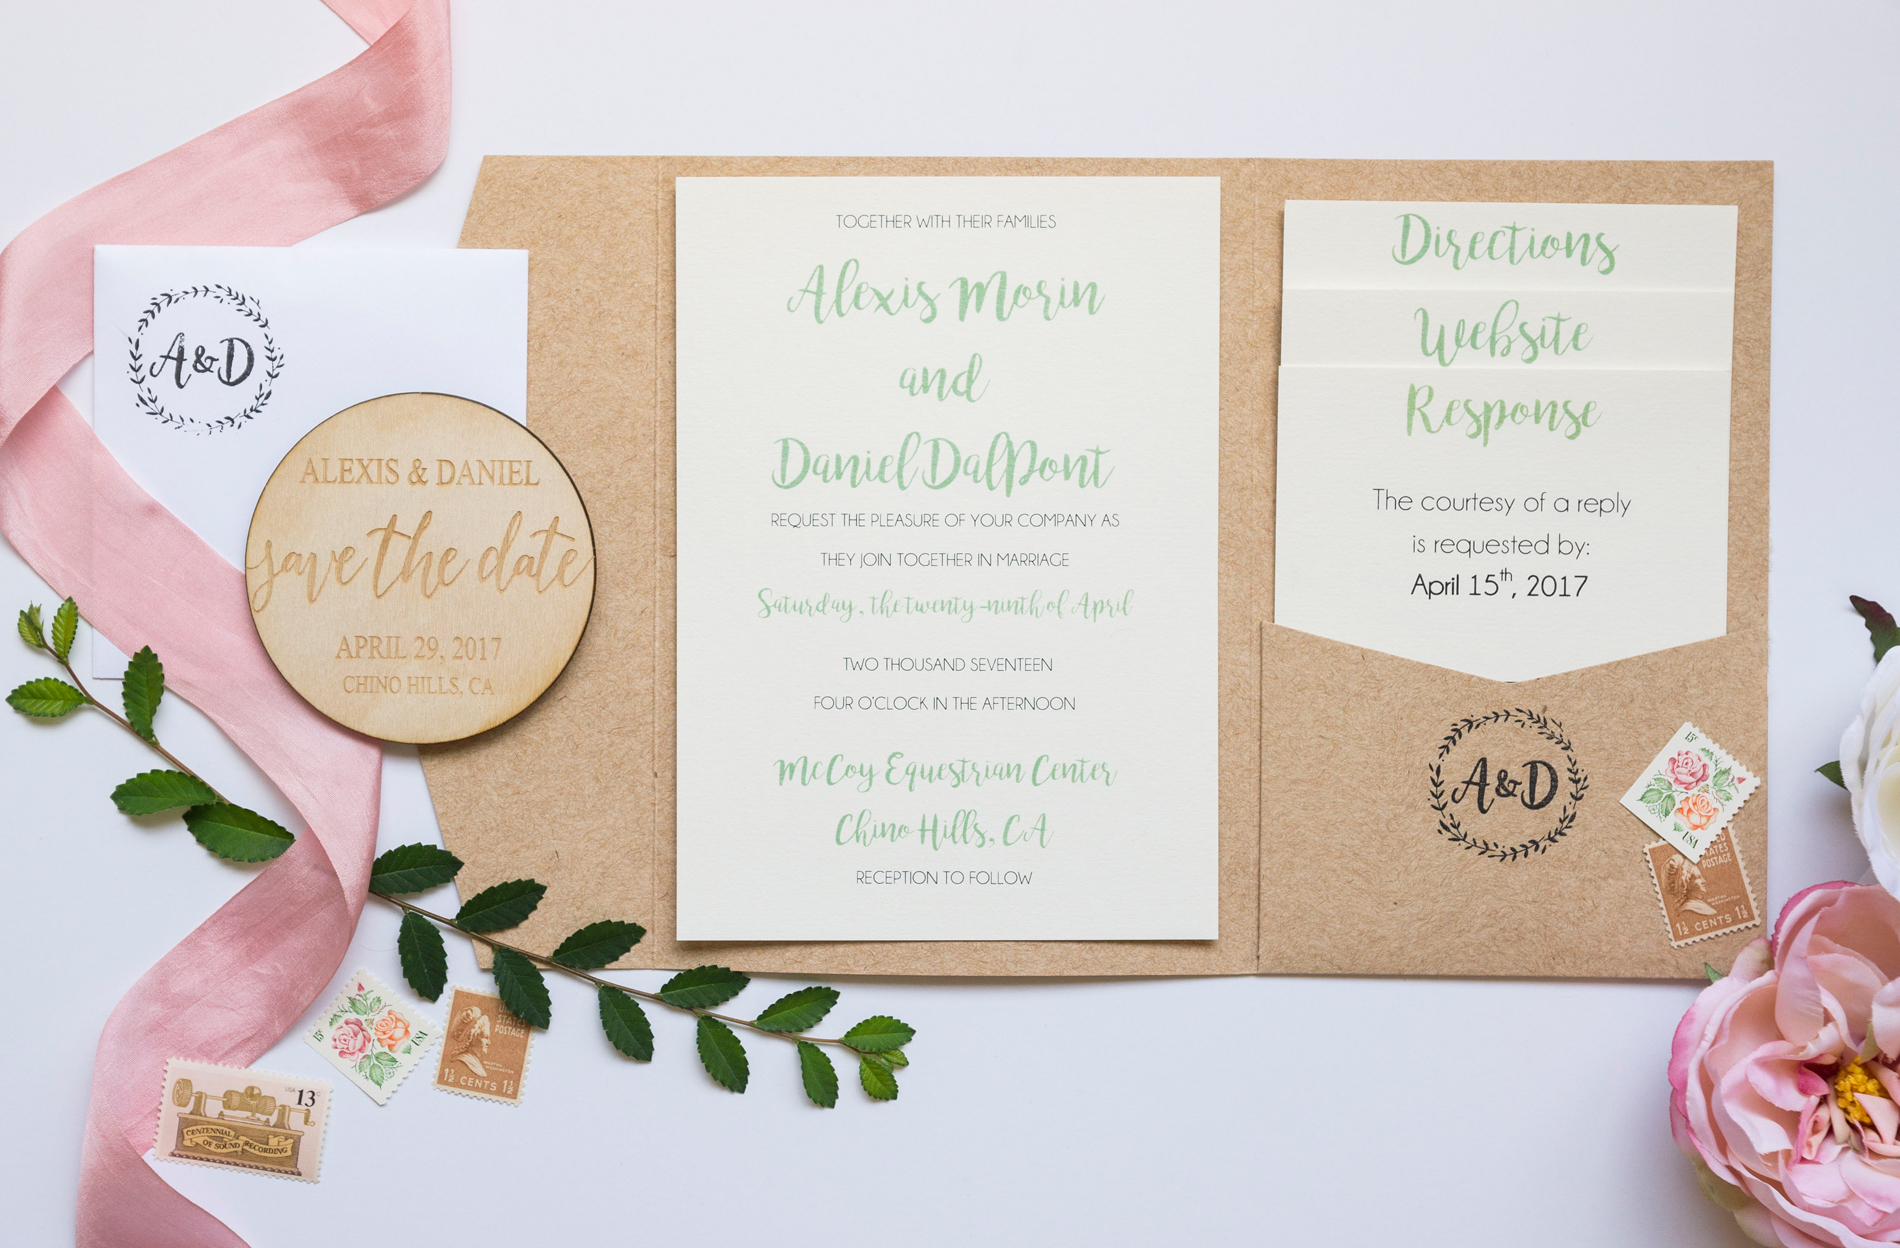 Neutral Cork Wedding invitations - A McCoy Equestrian Center Wedding - Peterson Design & Photography